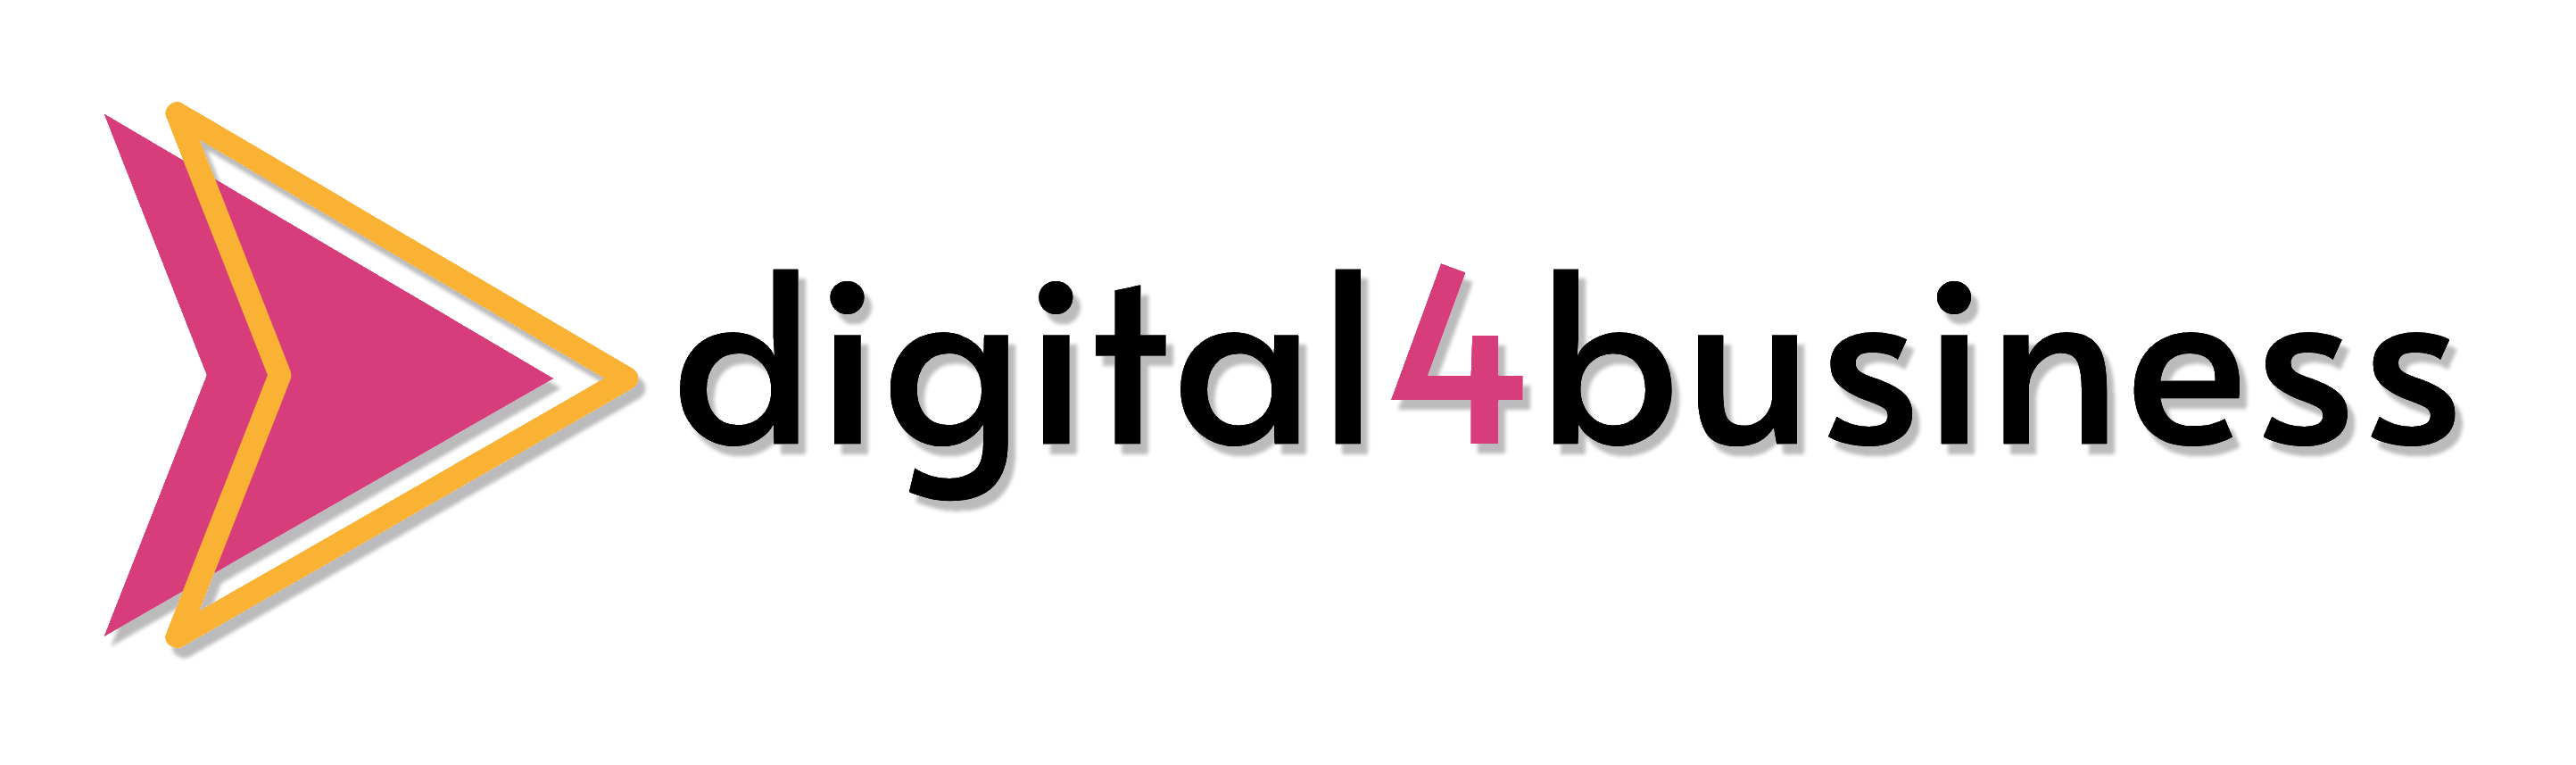 logo digital4business